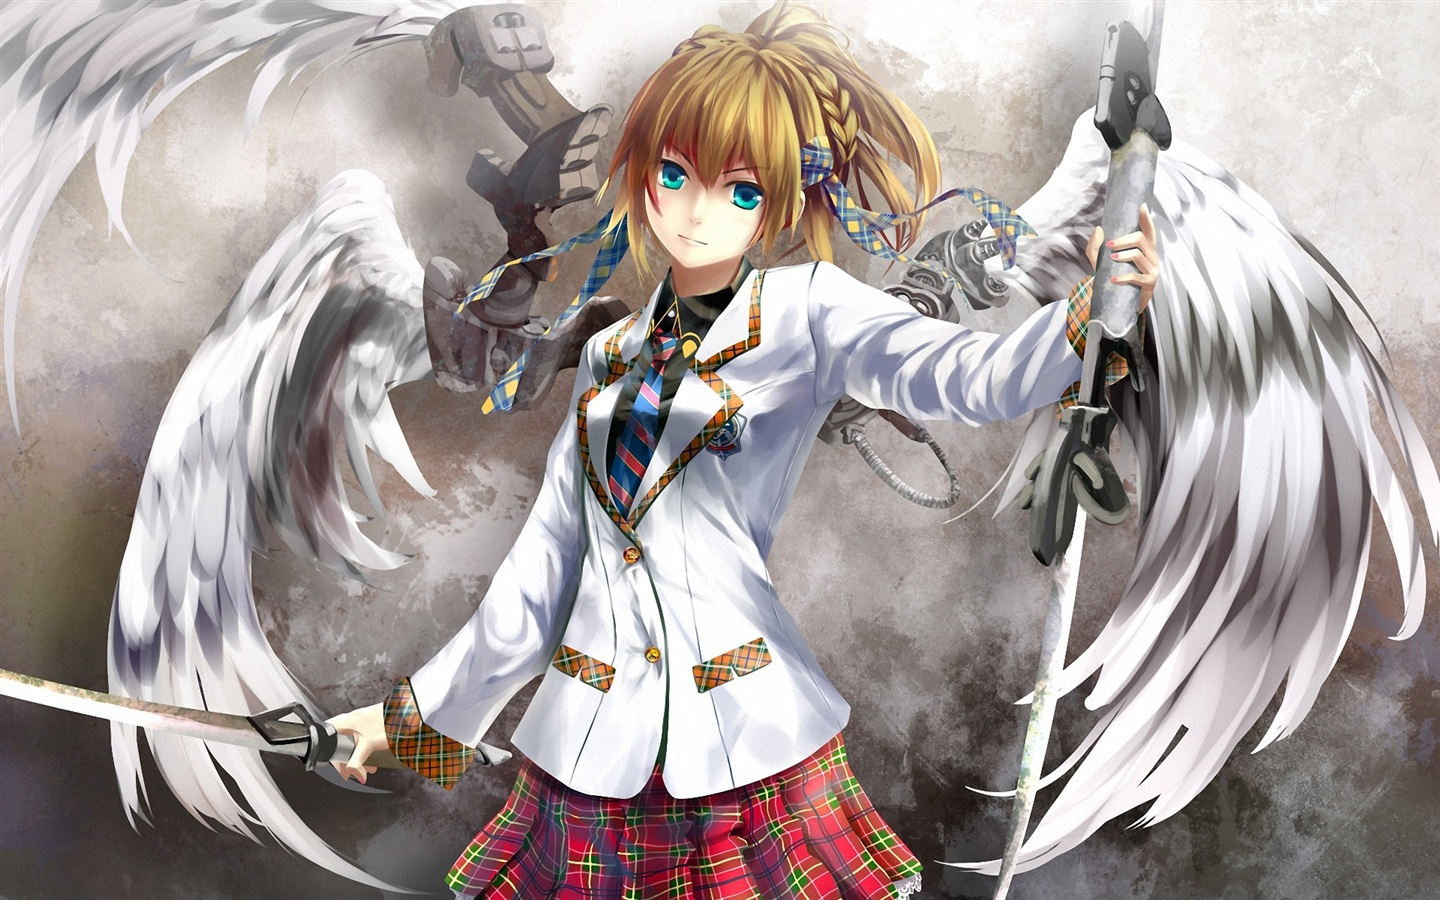 Wallpaper anime angel girl with a sword as a weapon - Angel girl wallpaper ...